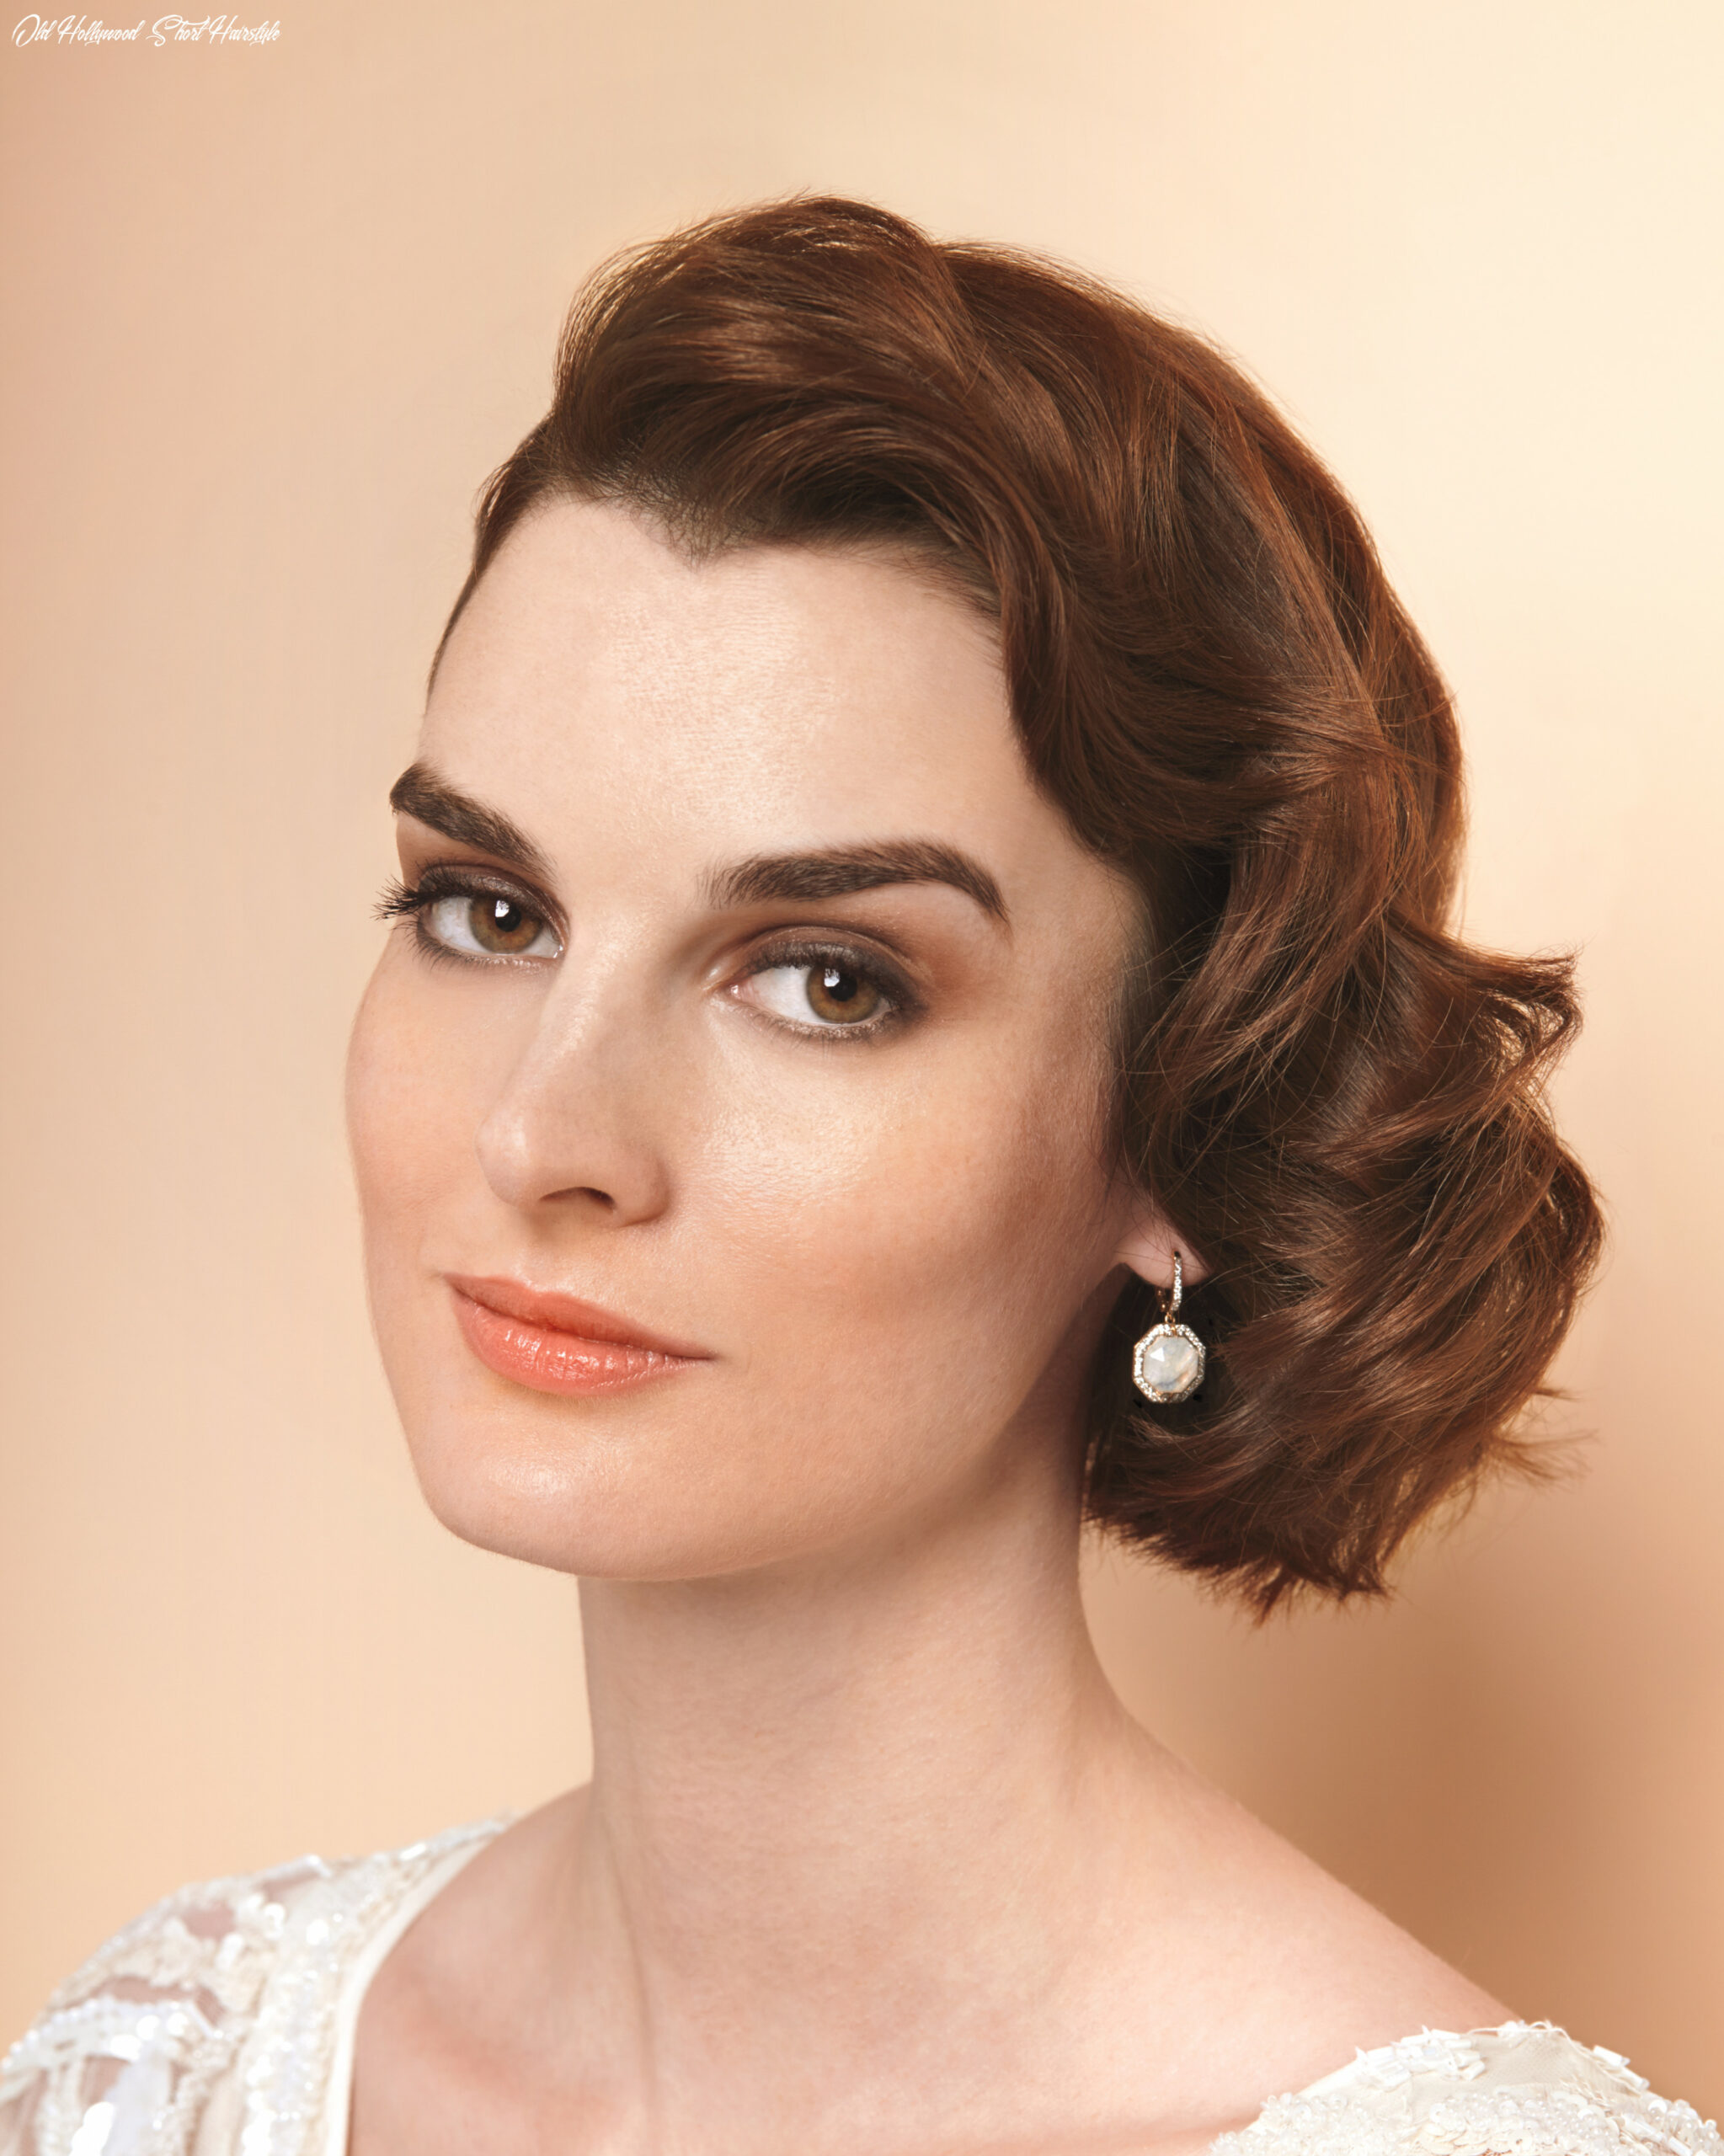 Old hollywood waves short wedding hairstyle | martha stewart weddings old hollywood short hairstyle